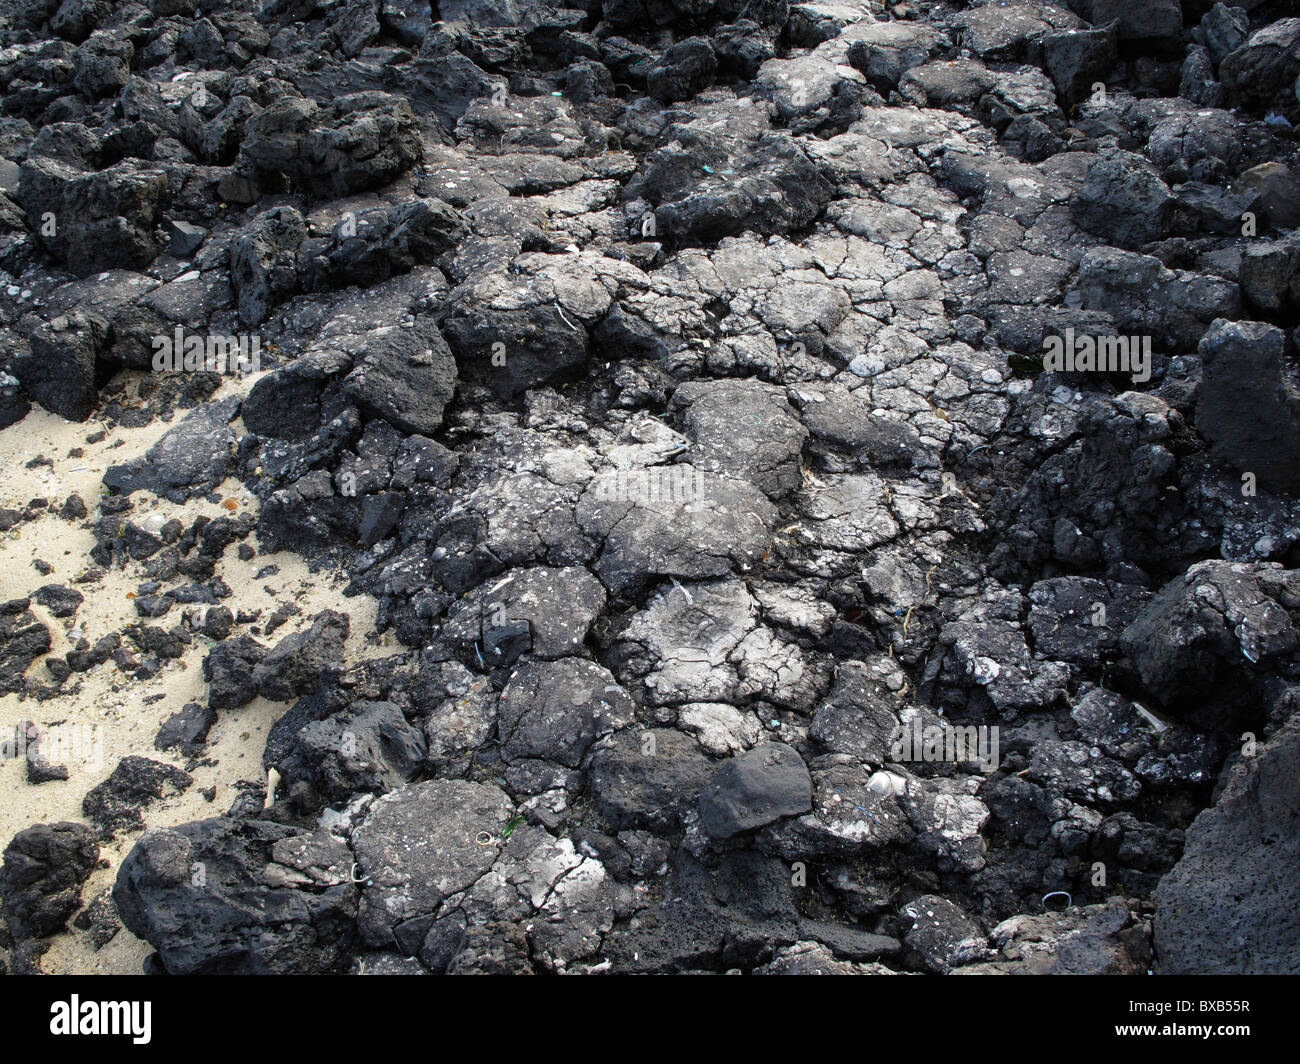 Bitumen on a rocky coast following an oil spill, Lanzarote, Canary Islands, Spain, Europe - Stock Image